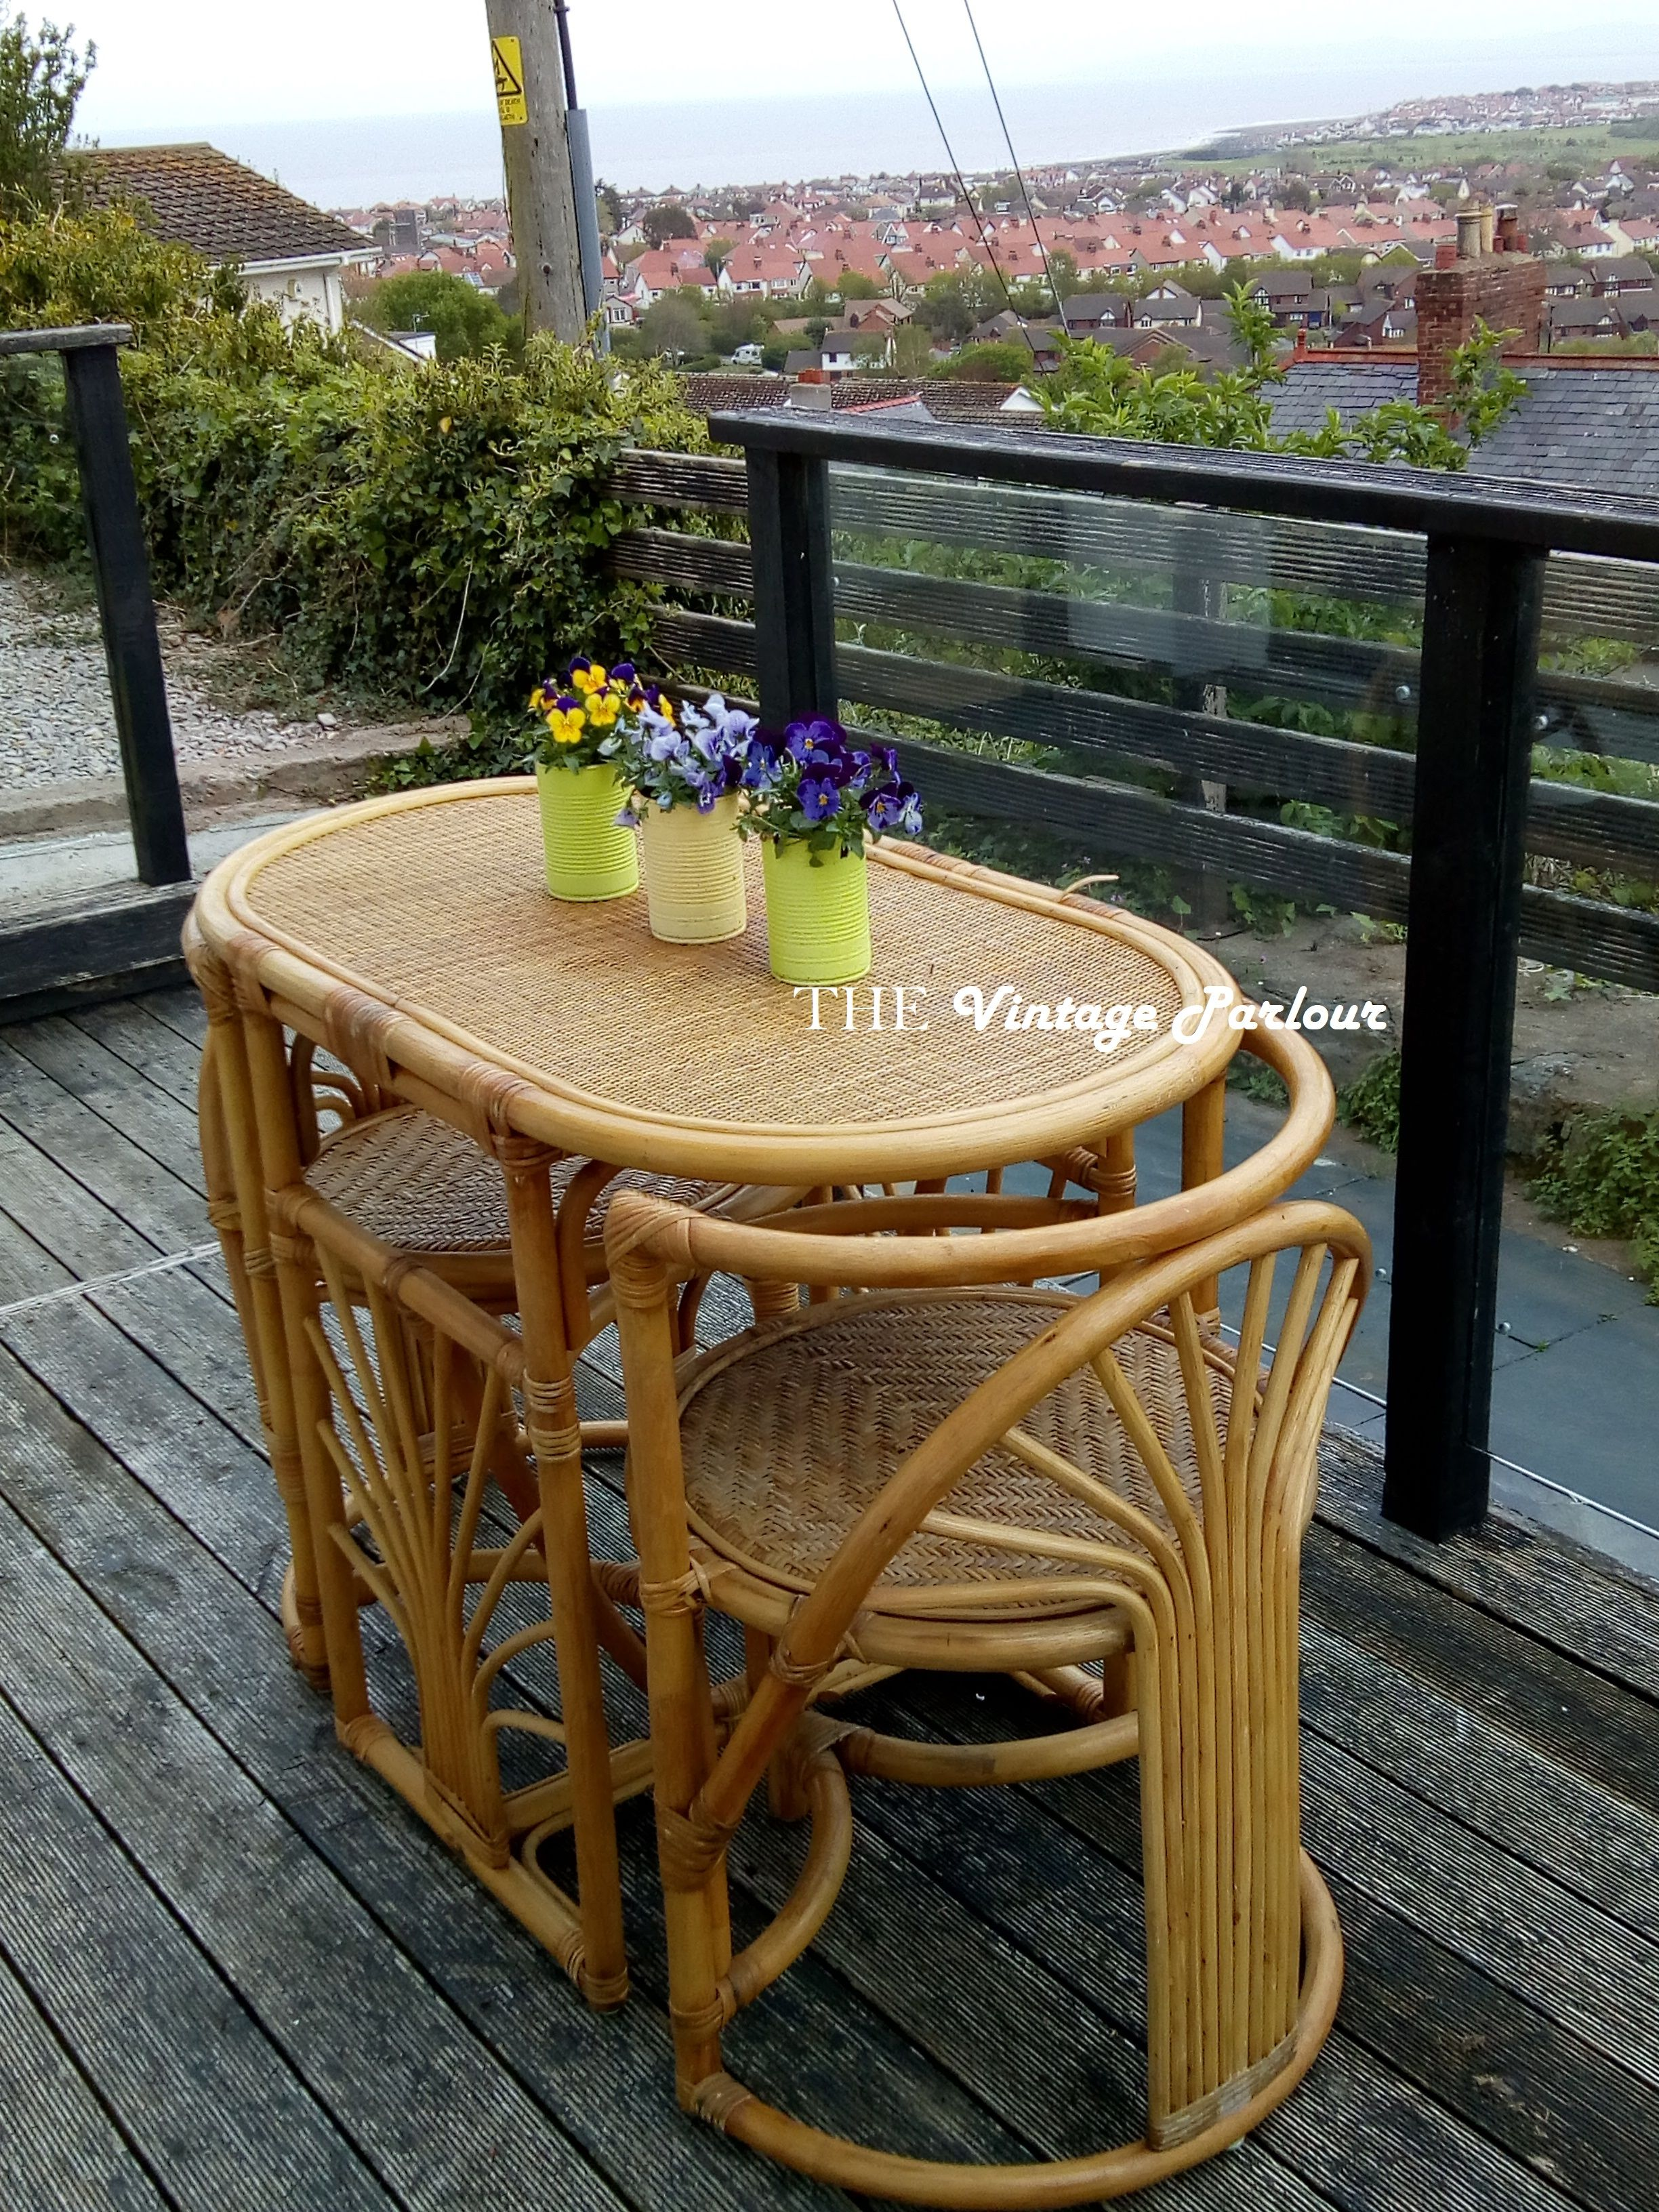 Bamboo Wicker Table Chairs Honeymoon Set Wicker Table And Chairs Wicker Table Small Table And Chairs